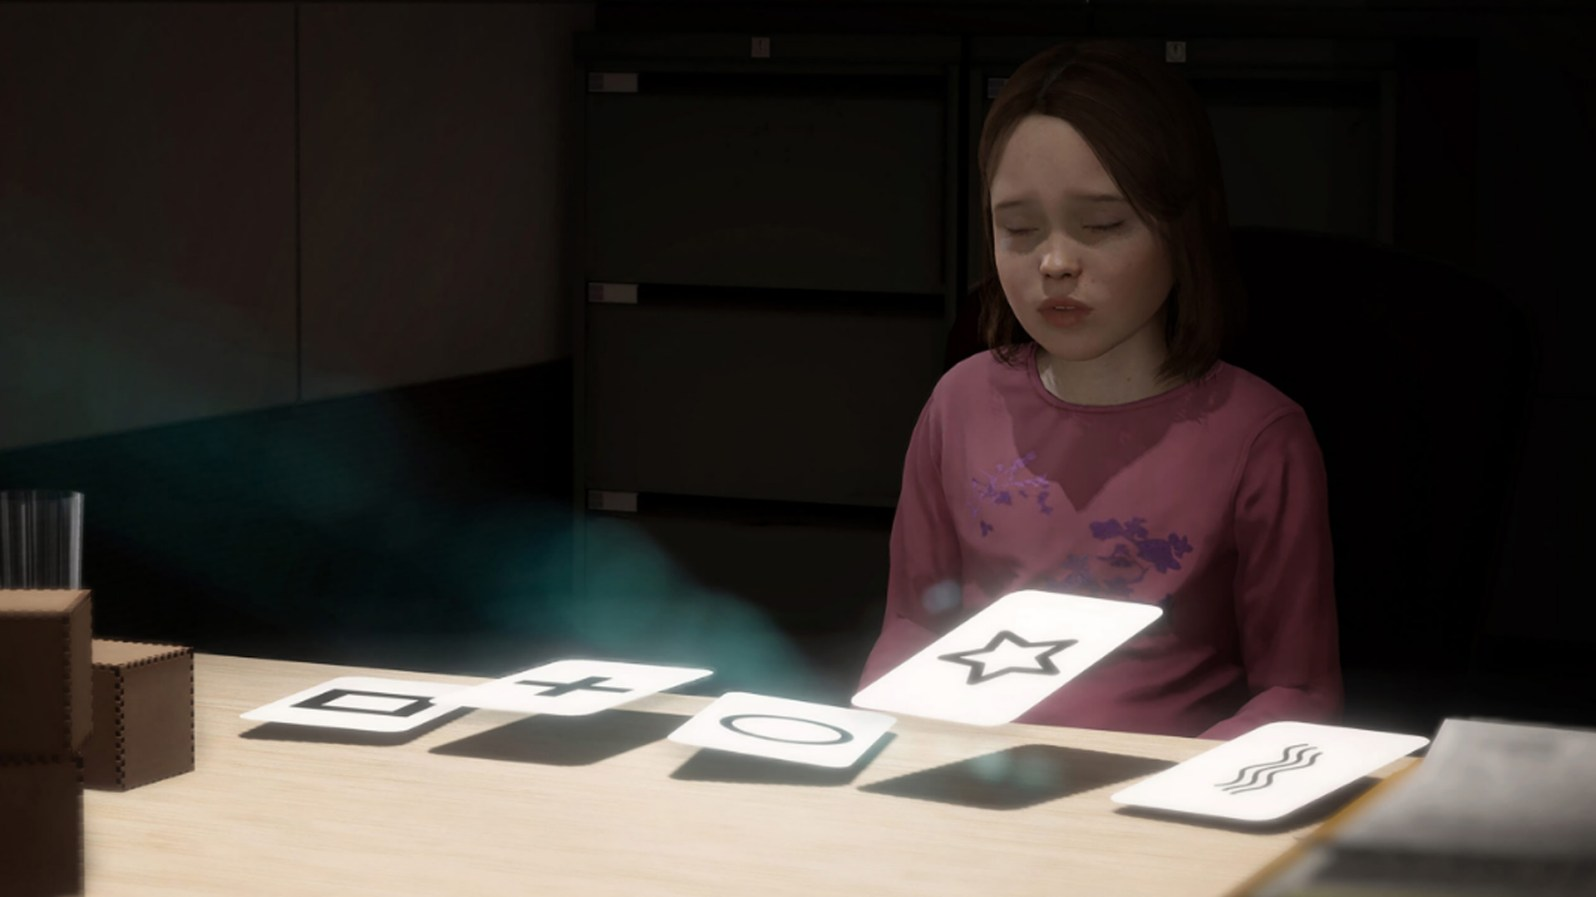 Quelle: Quantic Dream - Beyond: Two Souls